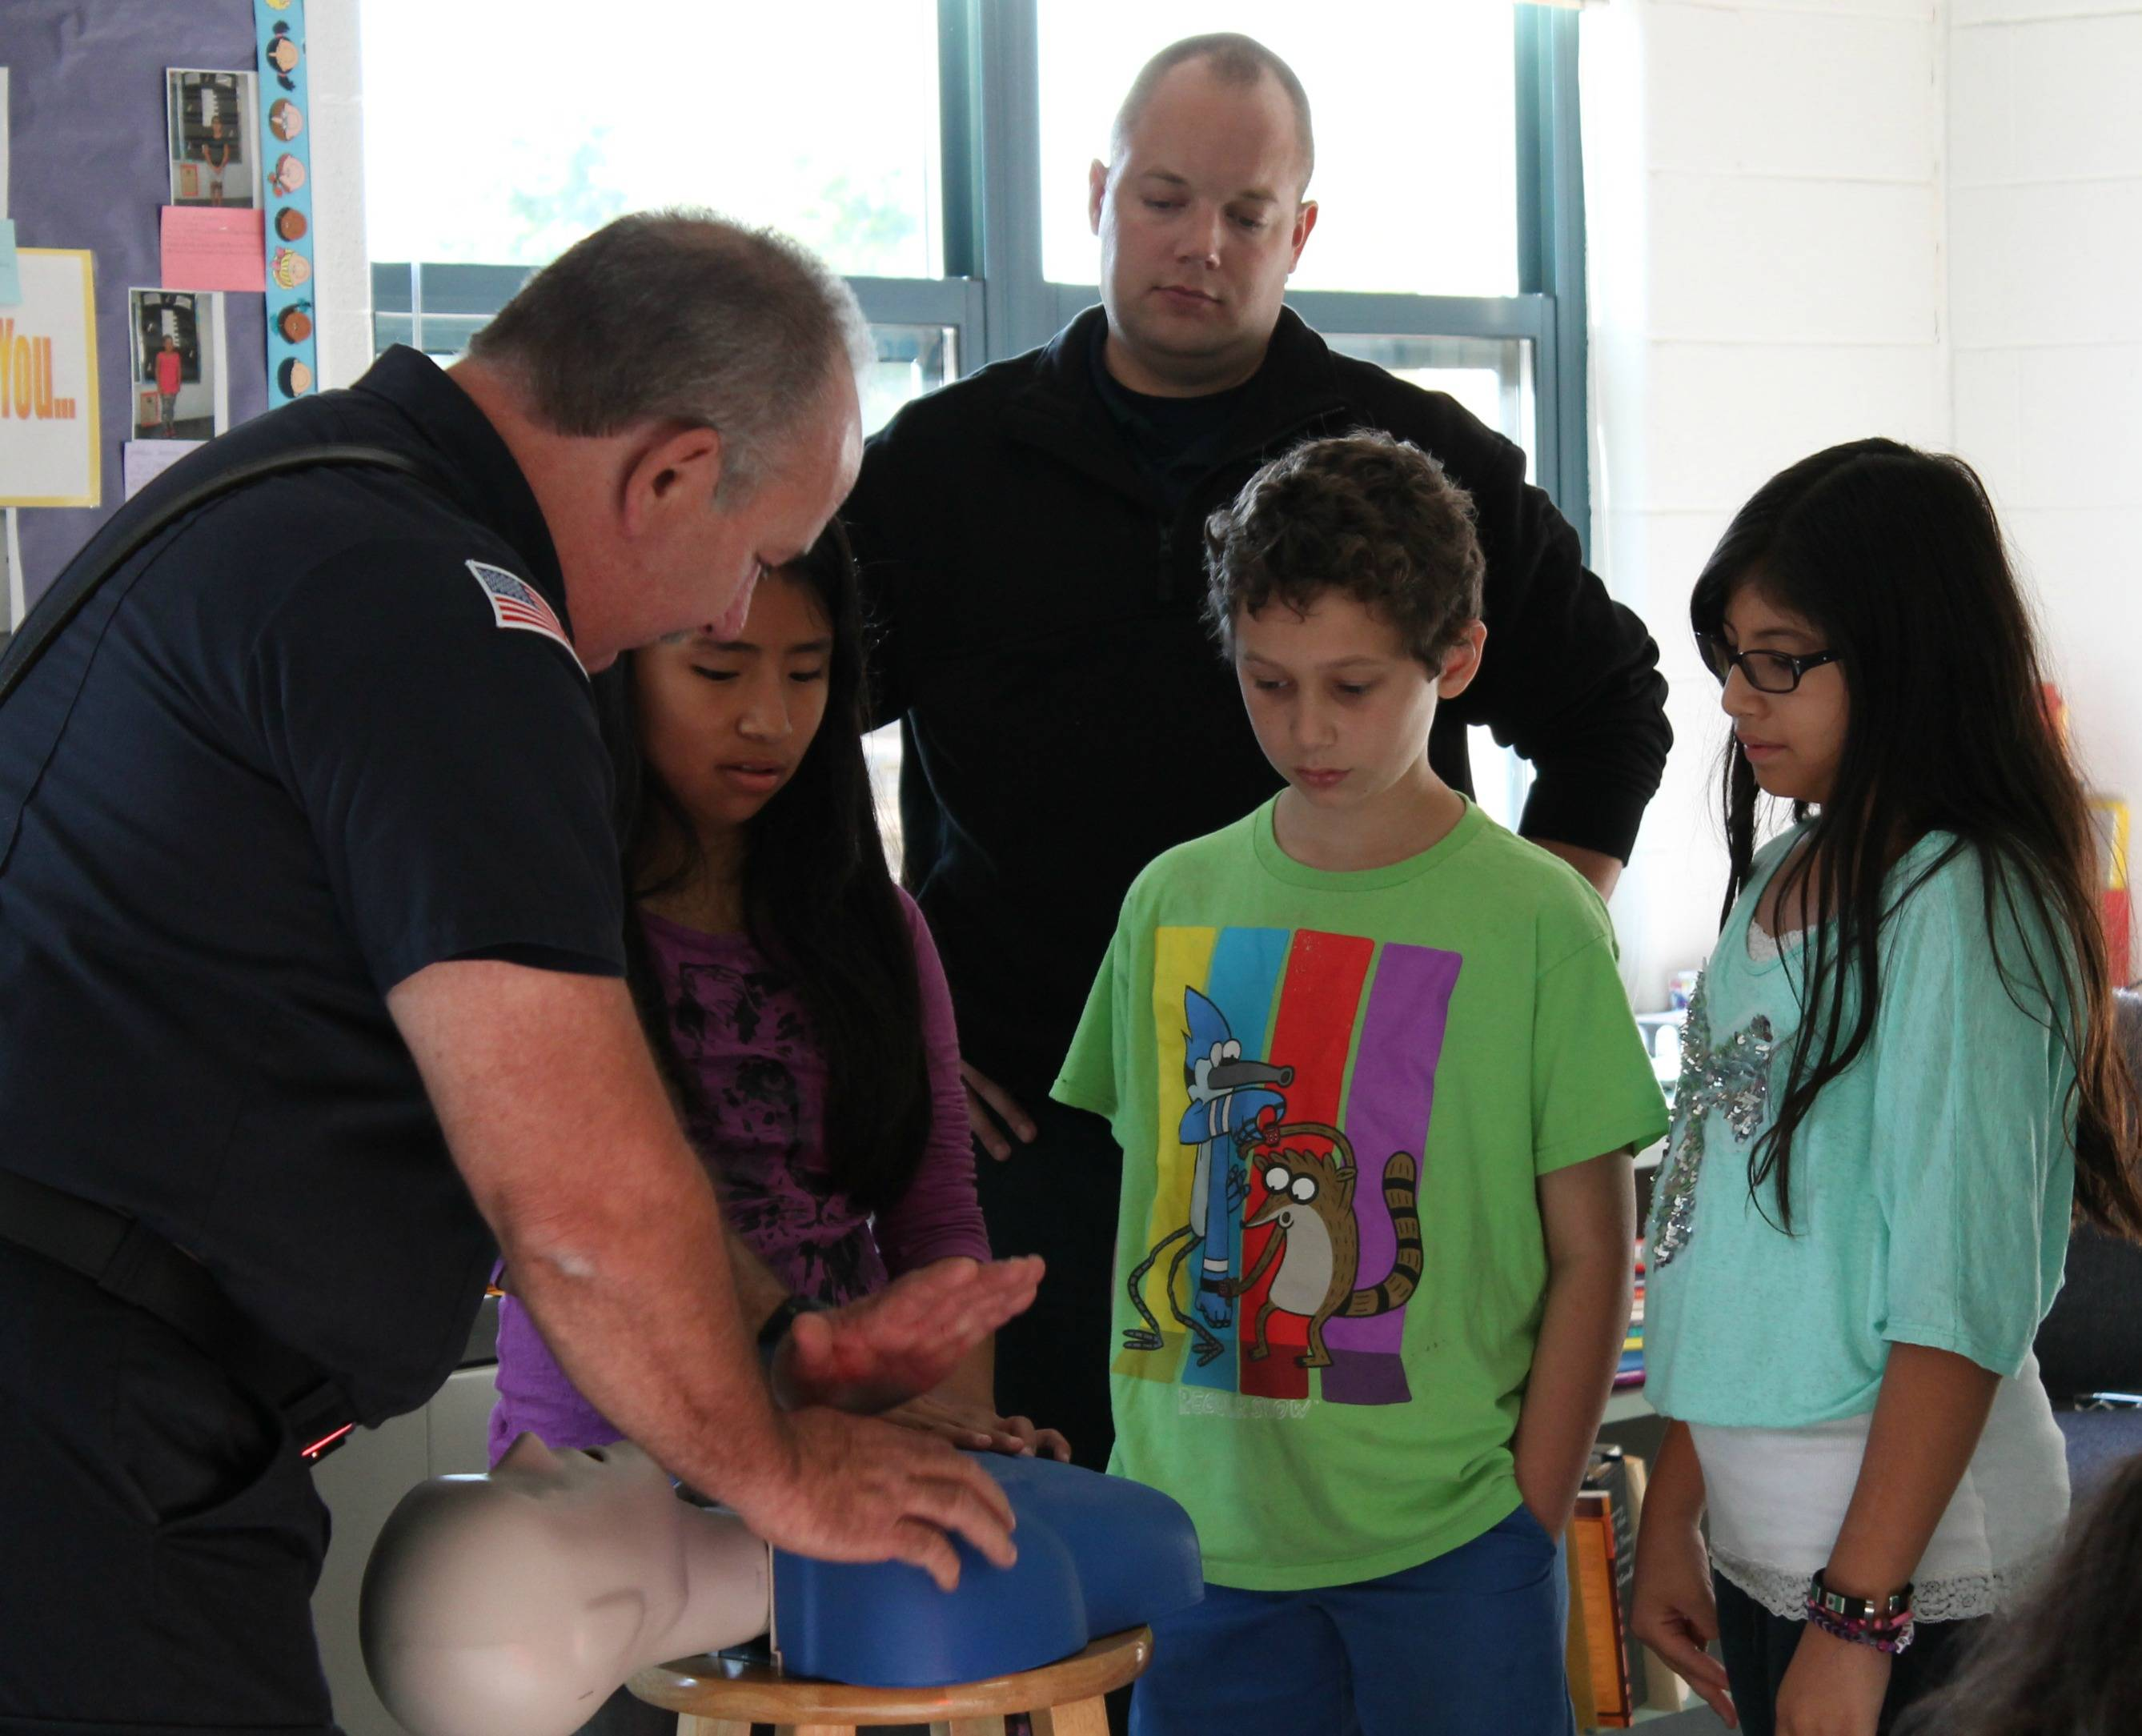 5th grade students at Currier Elementary School observe proper CPR technique demonstrated by fire fighter from West Chicago Fire Department.